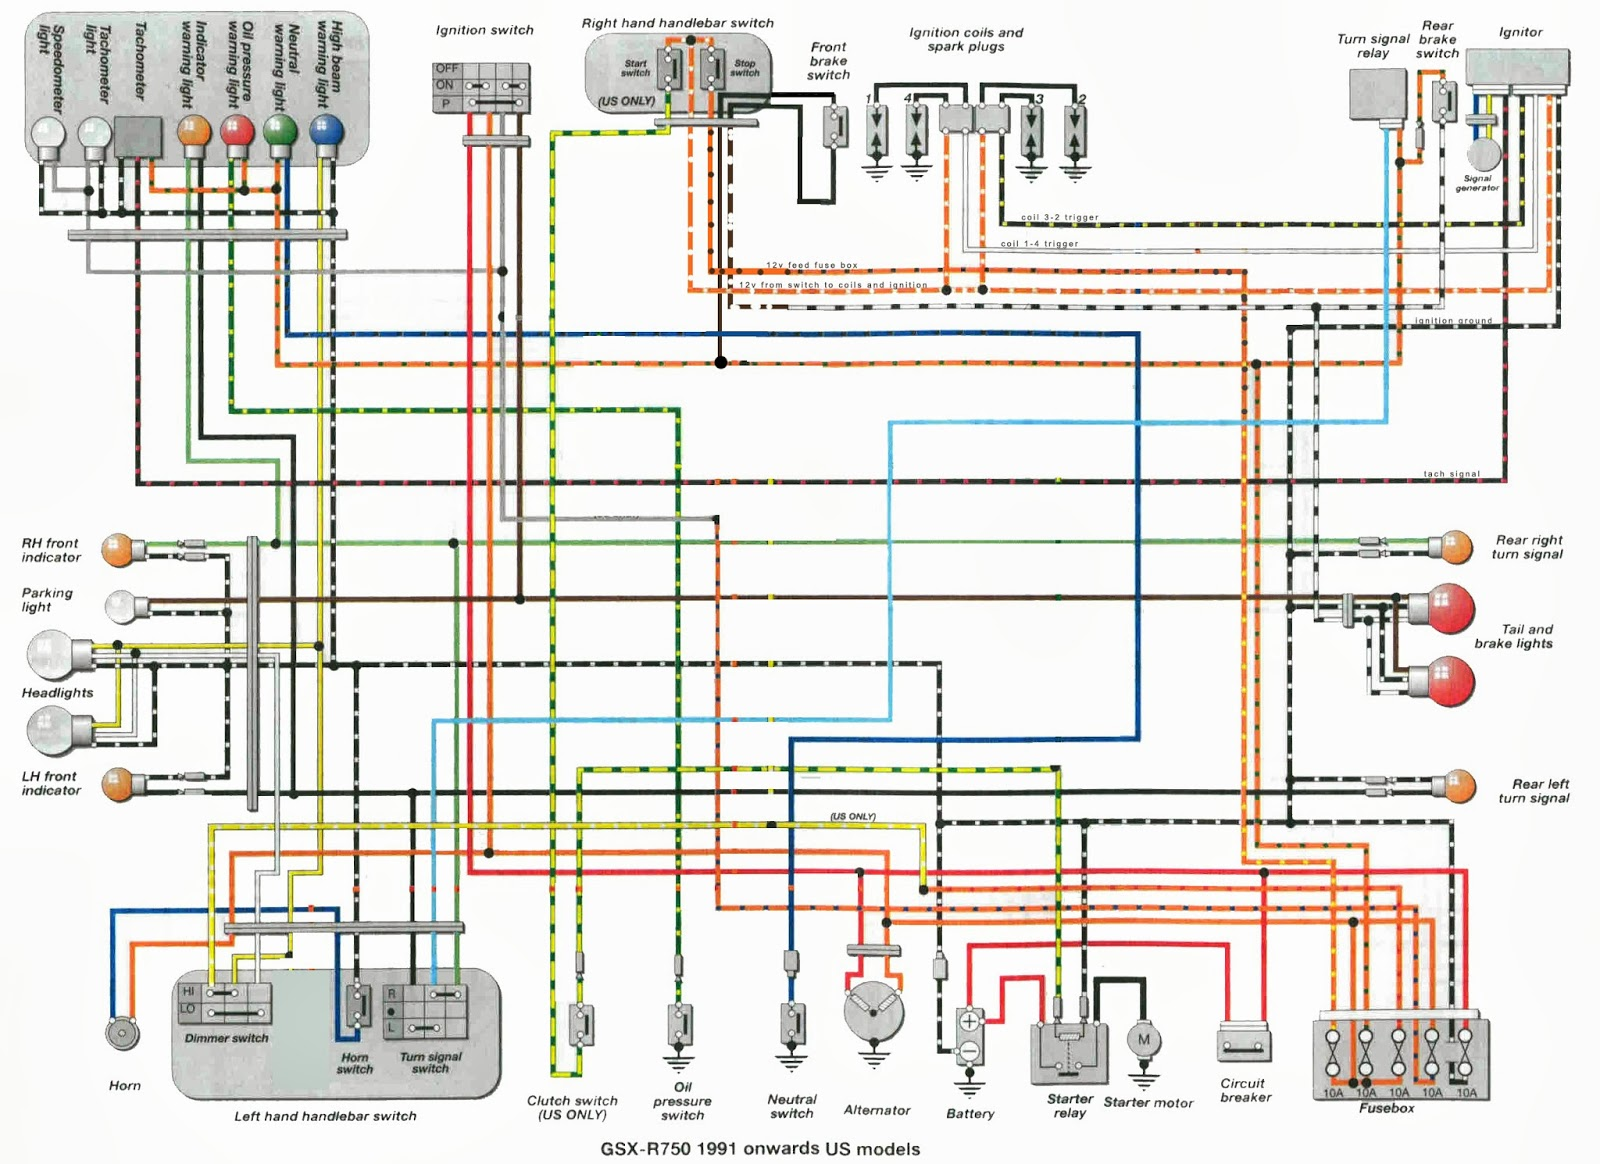 wiring diagram suzuki gsxr 600 1993 the wiring diagram 2005 gsxr 750 wiring harness diagram 2005 [ 1600 x 1164 Pixel ]